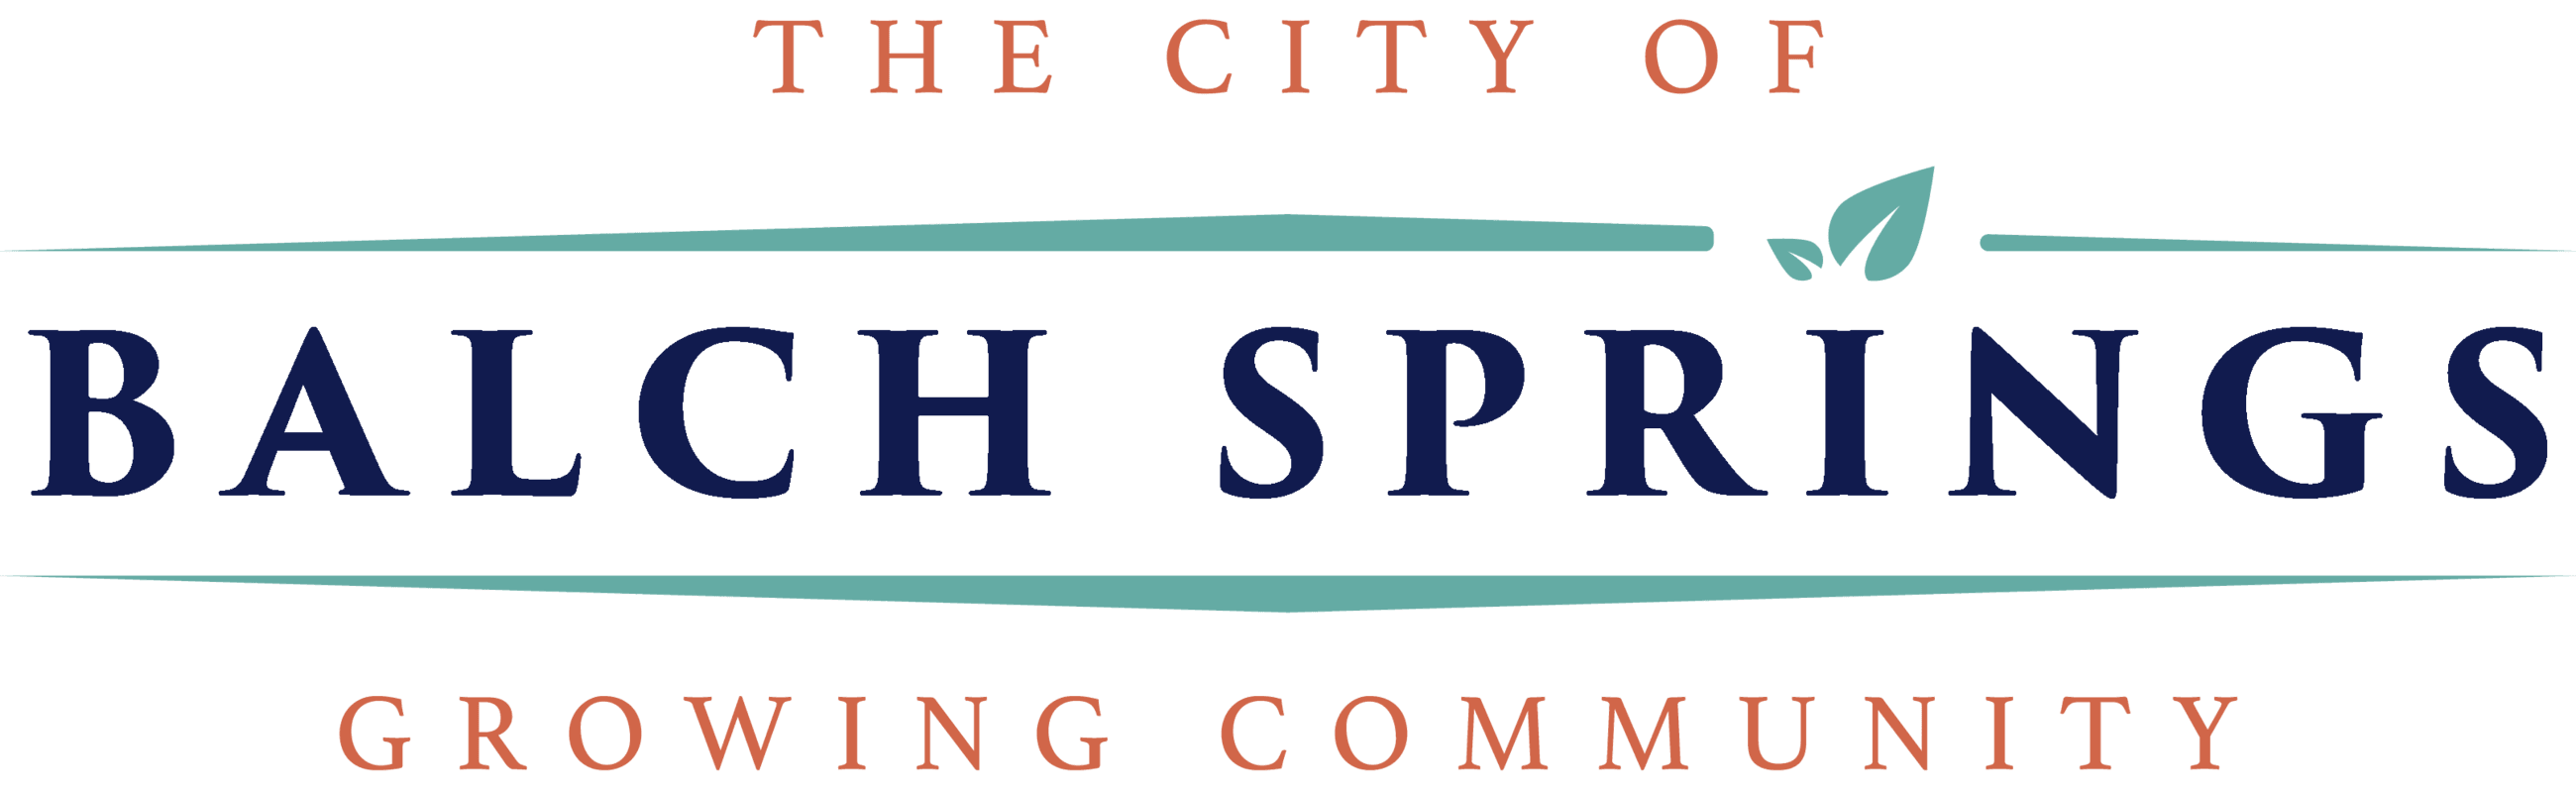 The City of Balch Springs Logo